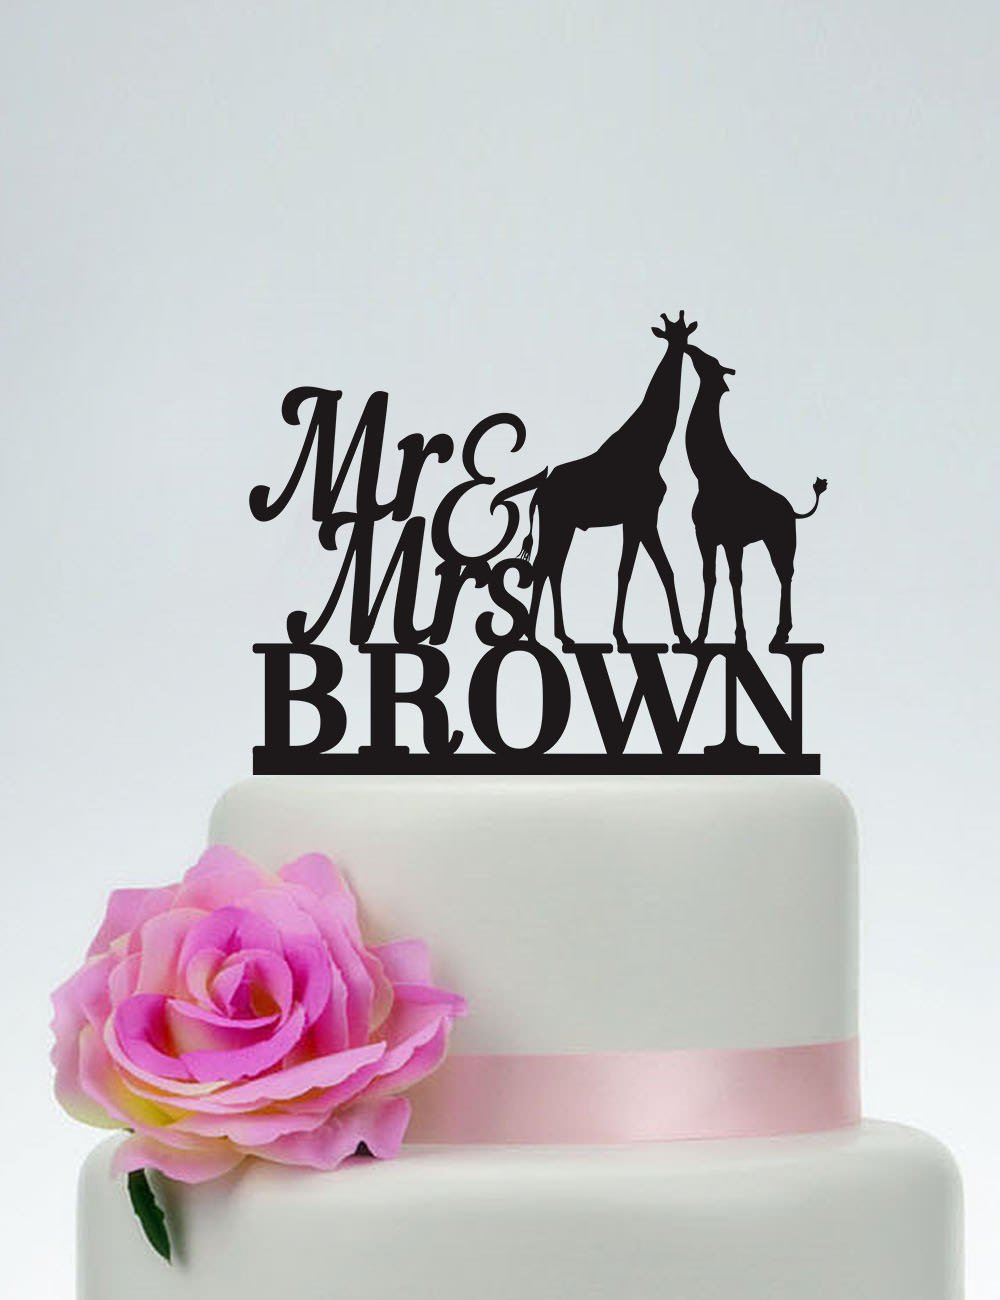 Custom Giraffe Mr And Mrs With Surname Animal Personalized Cake Topper Wedding Anniversary Party Favors Wedding Gifts For Bride And Groom by Dikoum